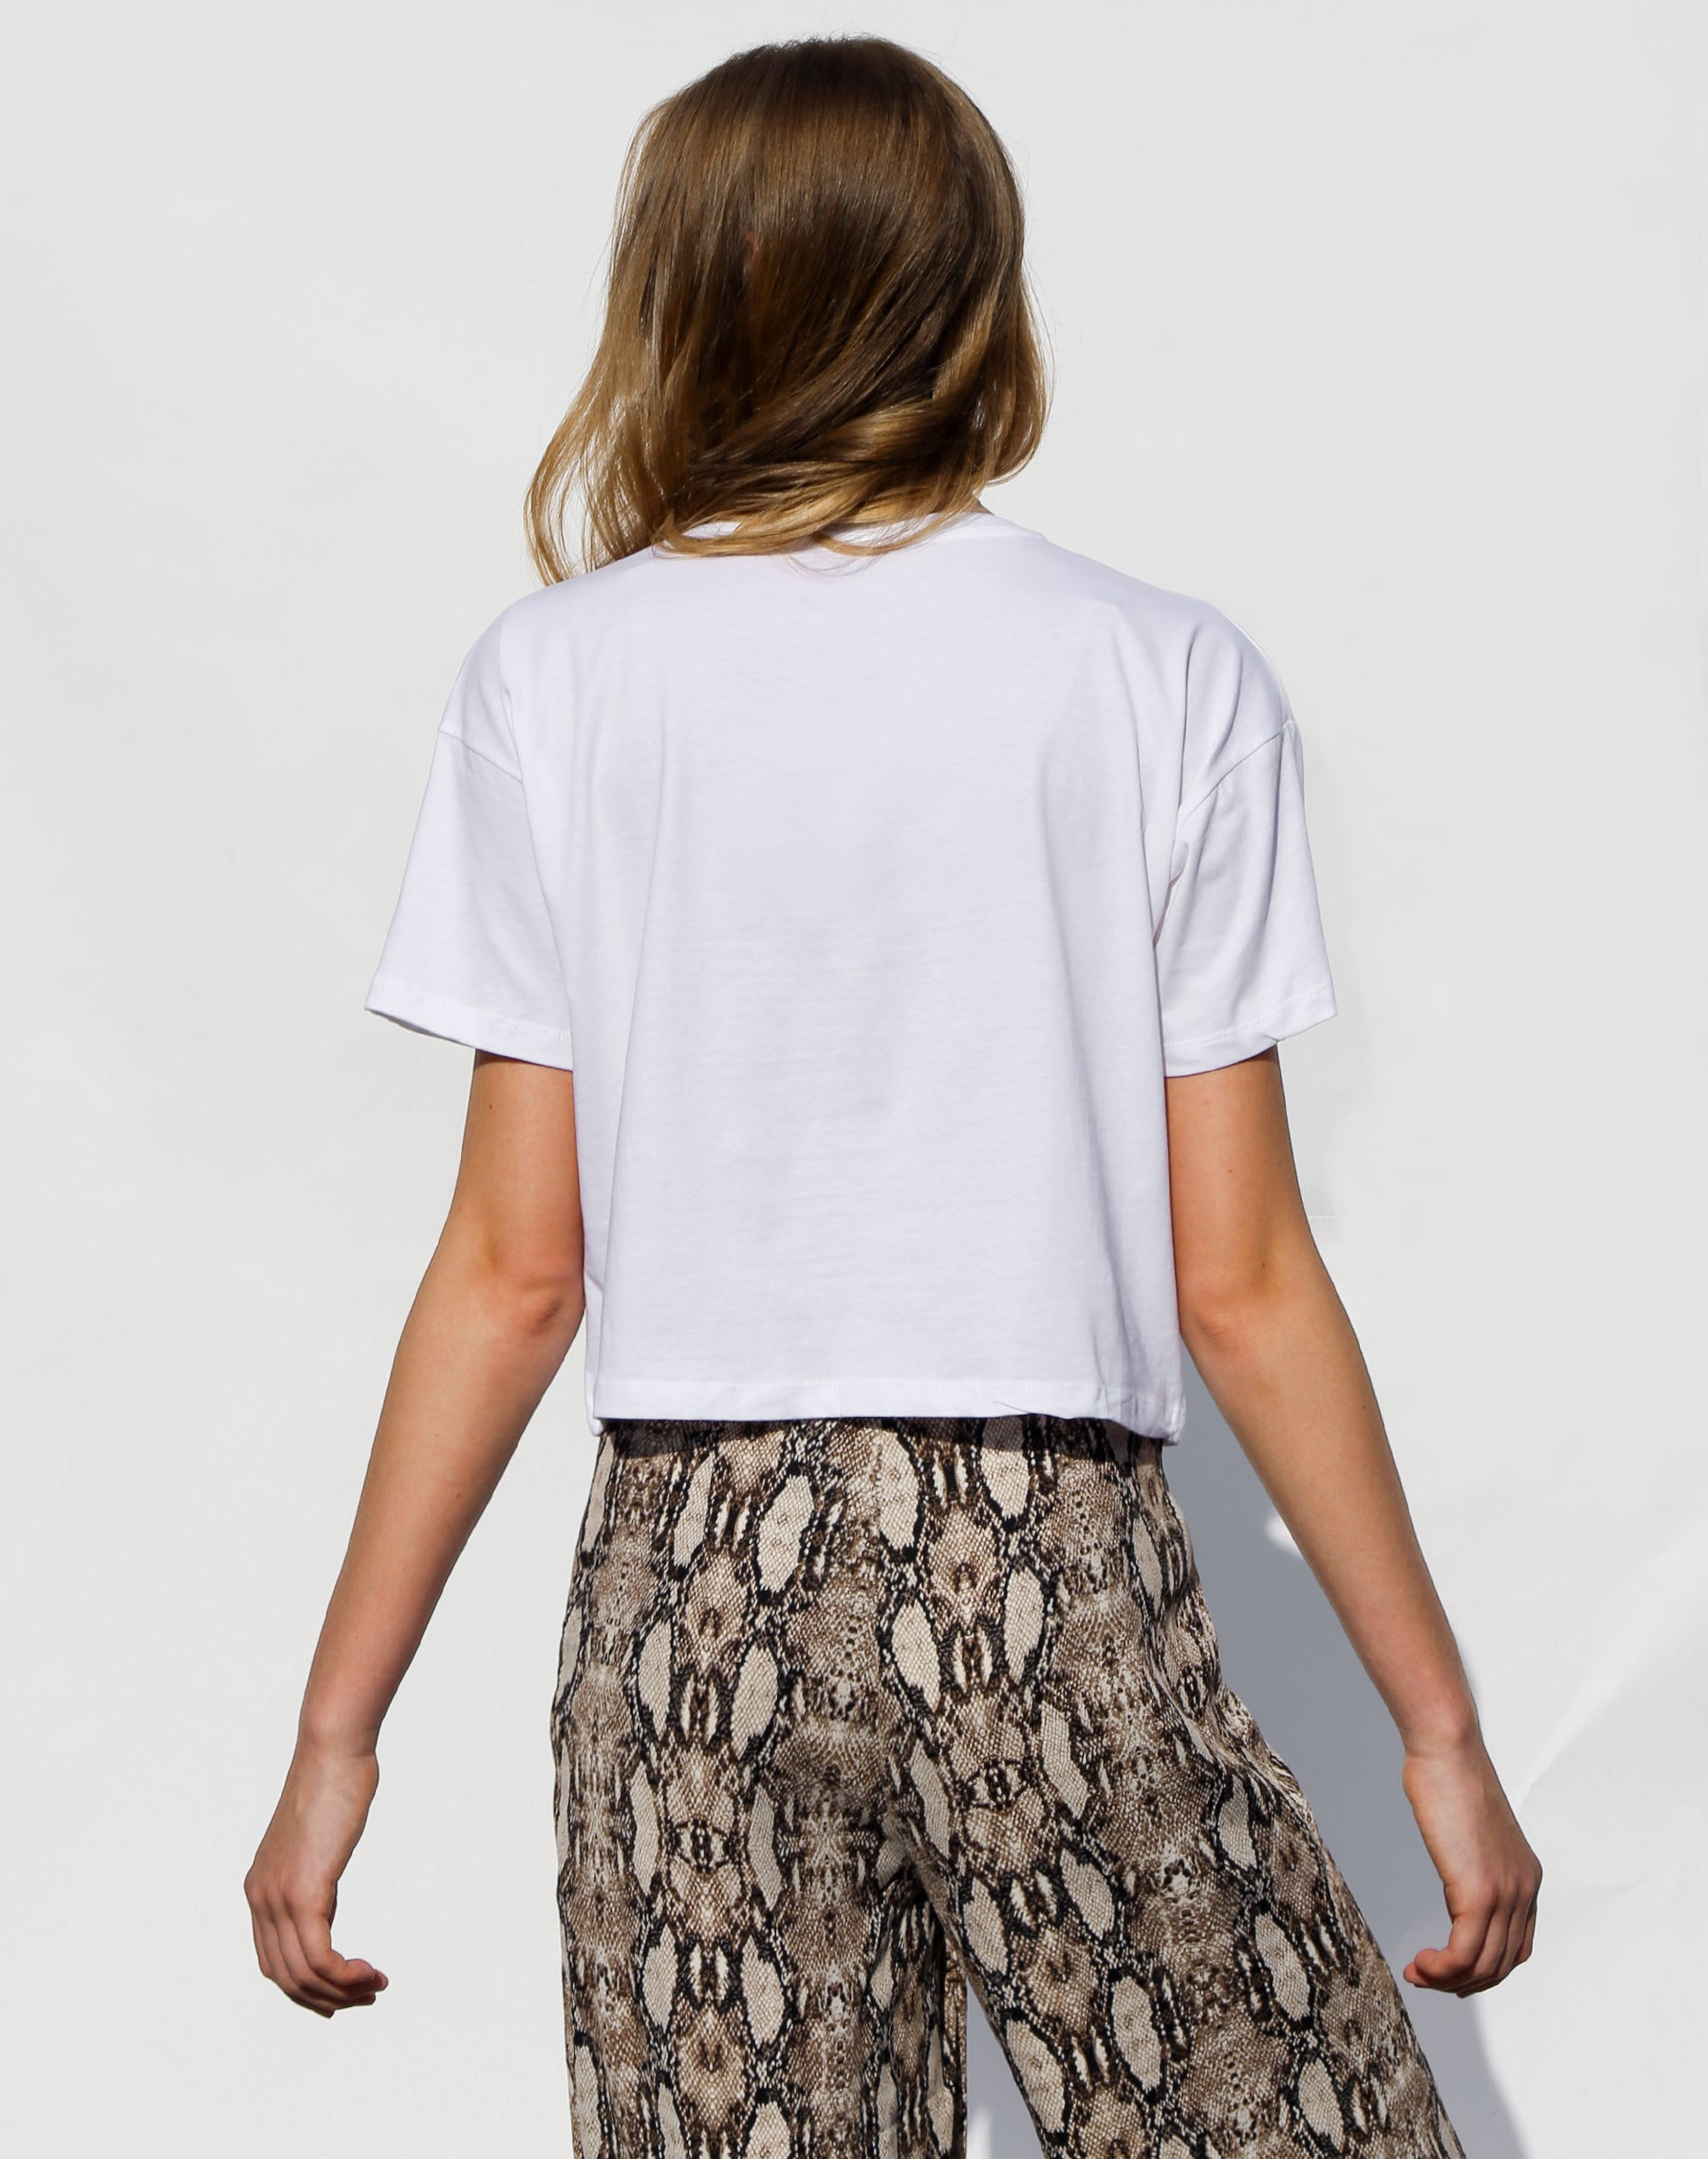 Photo of the back of the Nice cropped white tee from the Canada Day collection by Brunette the Label.